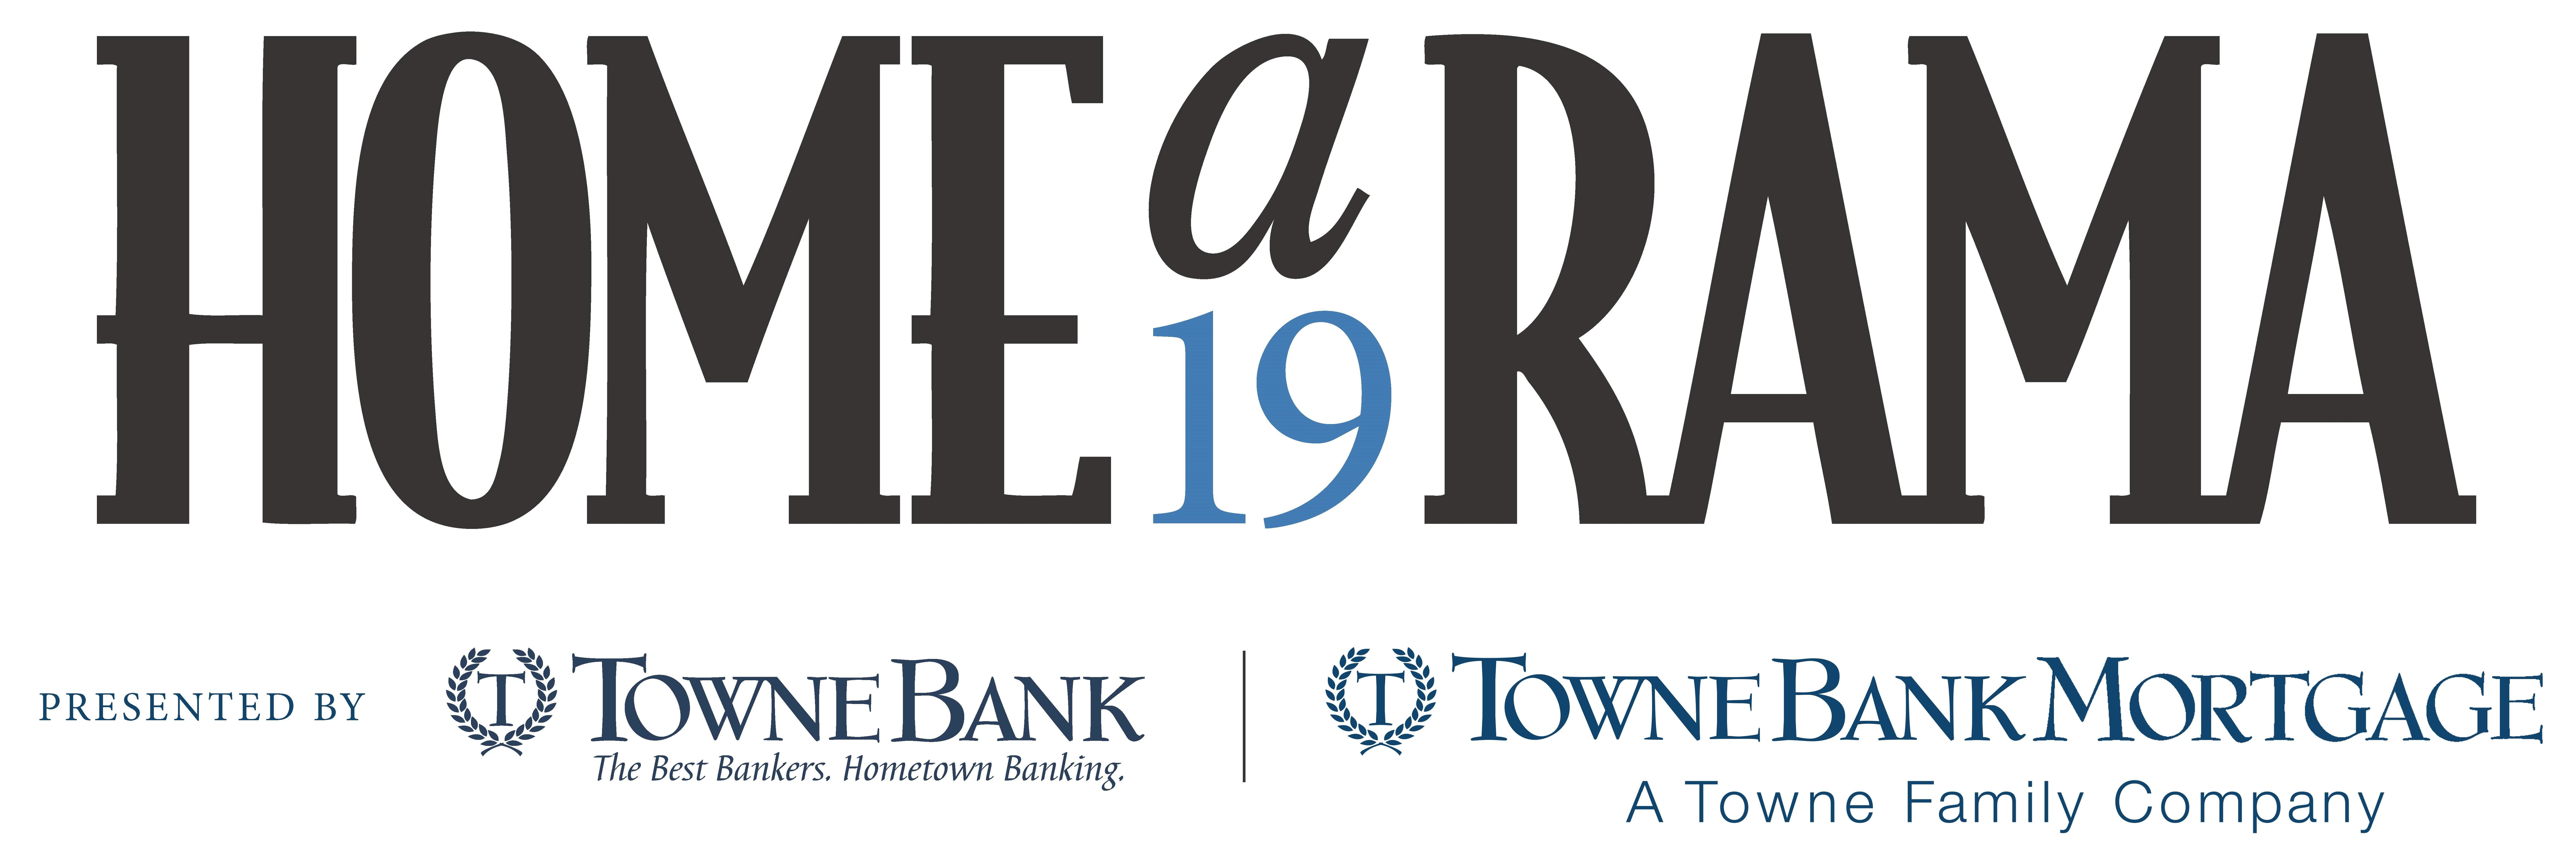 Homearama Masthead with TowneBank